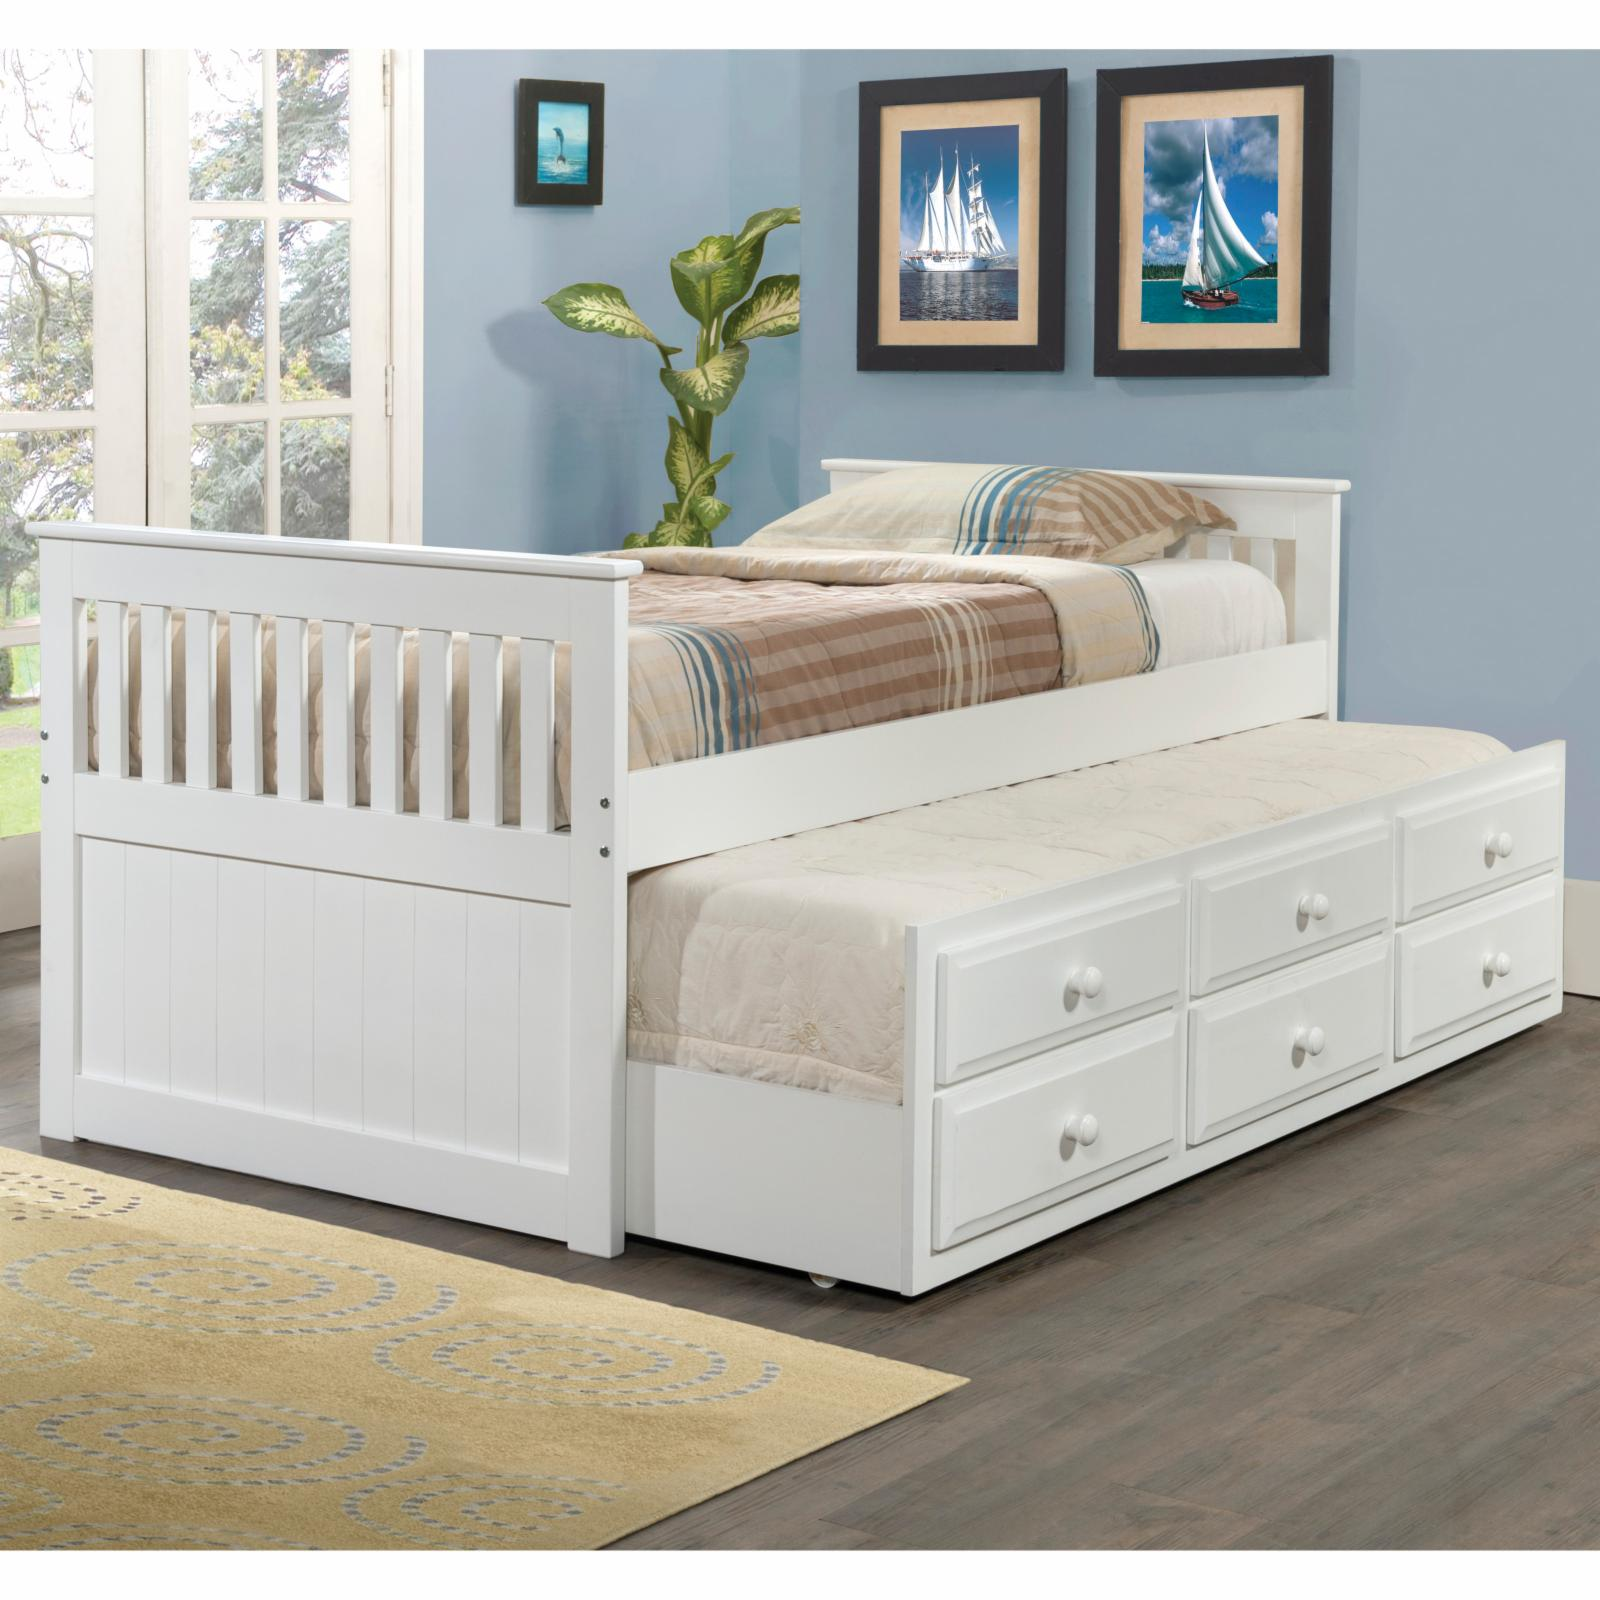 Donco Kids Captains Twin Trundle Bed - 103-TW